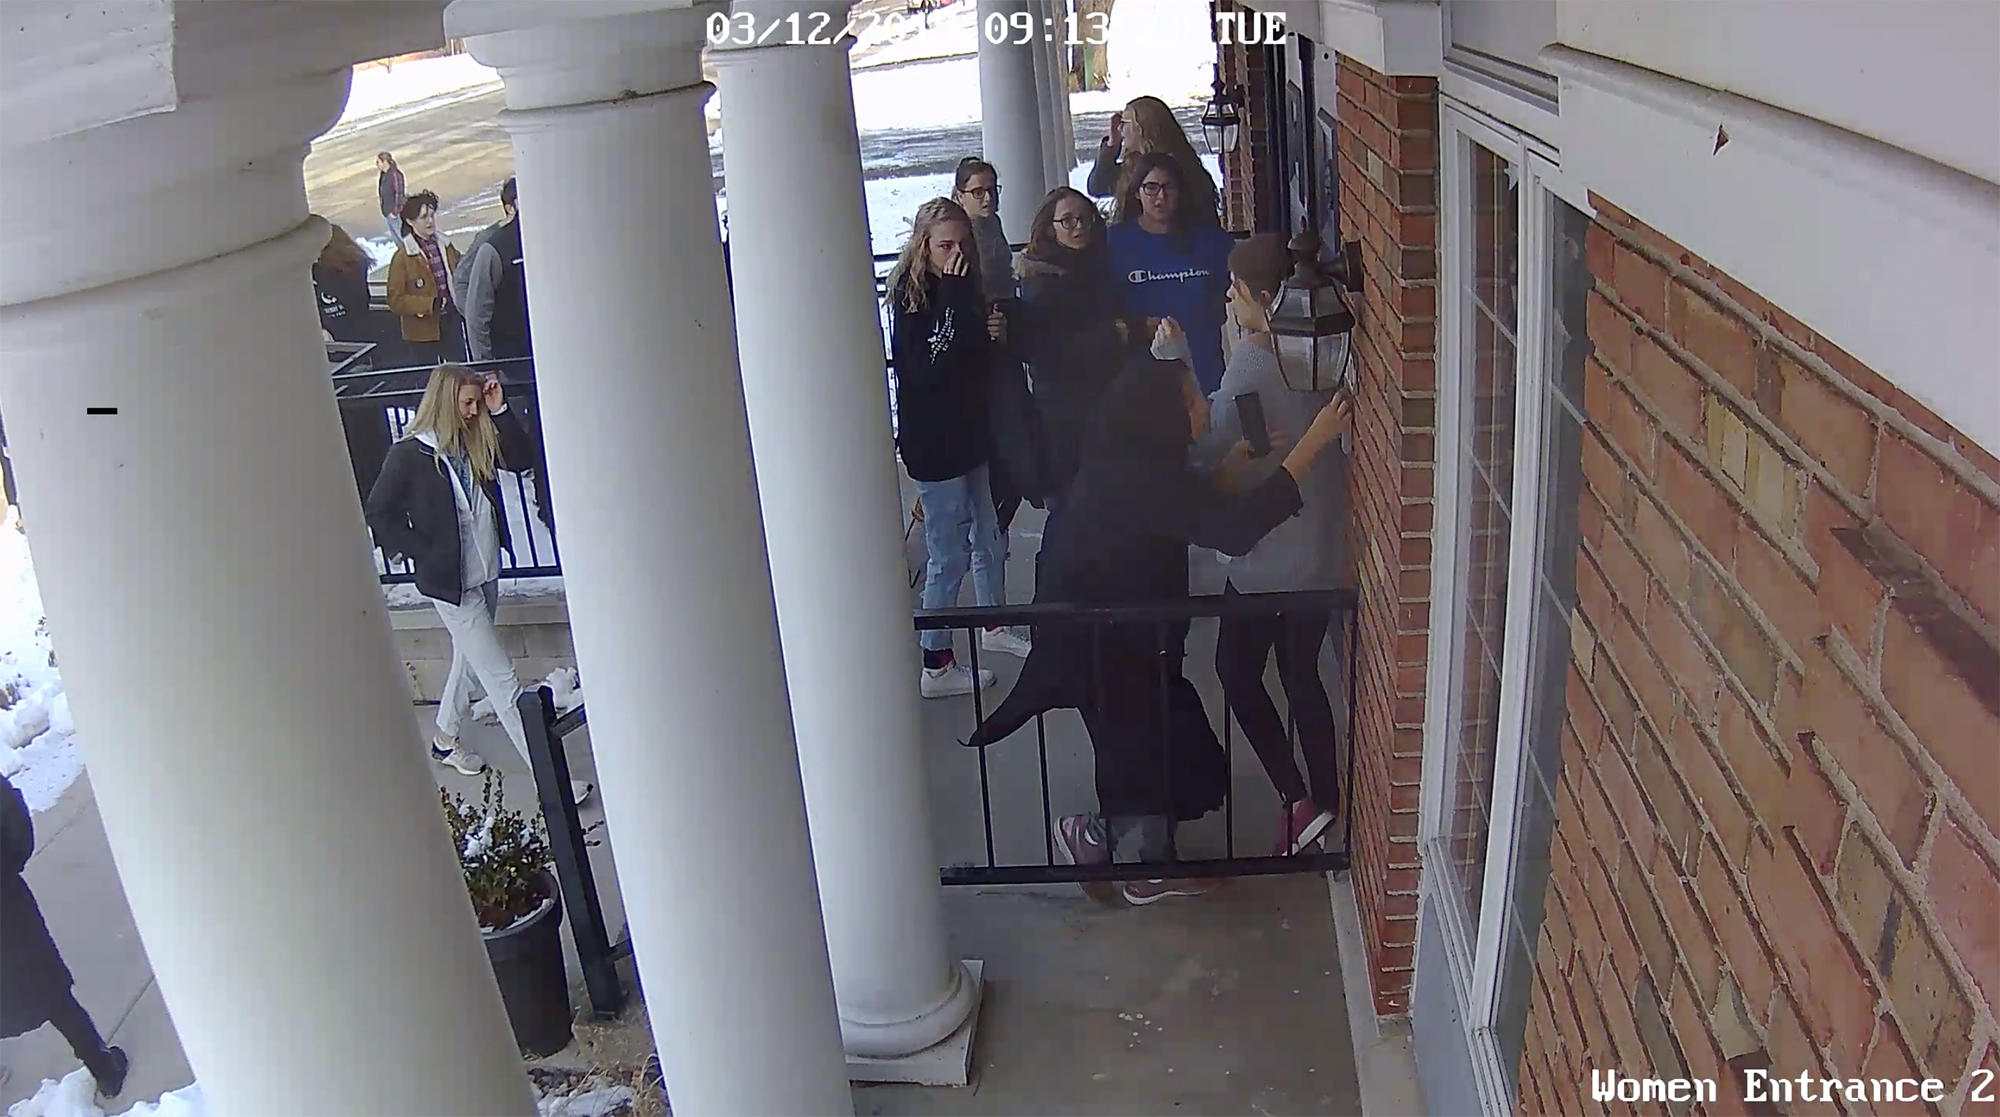 As a school shooting unfolded, a teen opened her mosque doors to shelter fleeing students